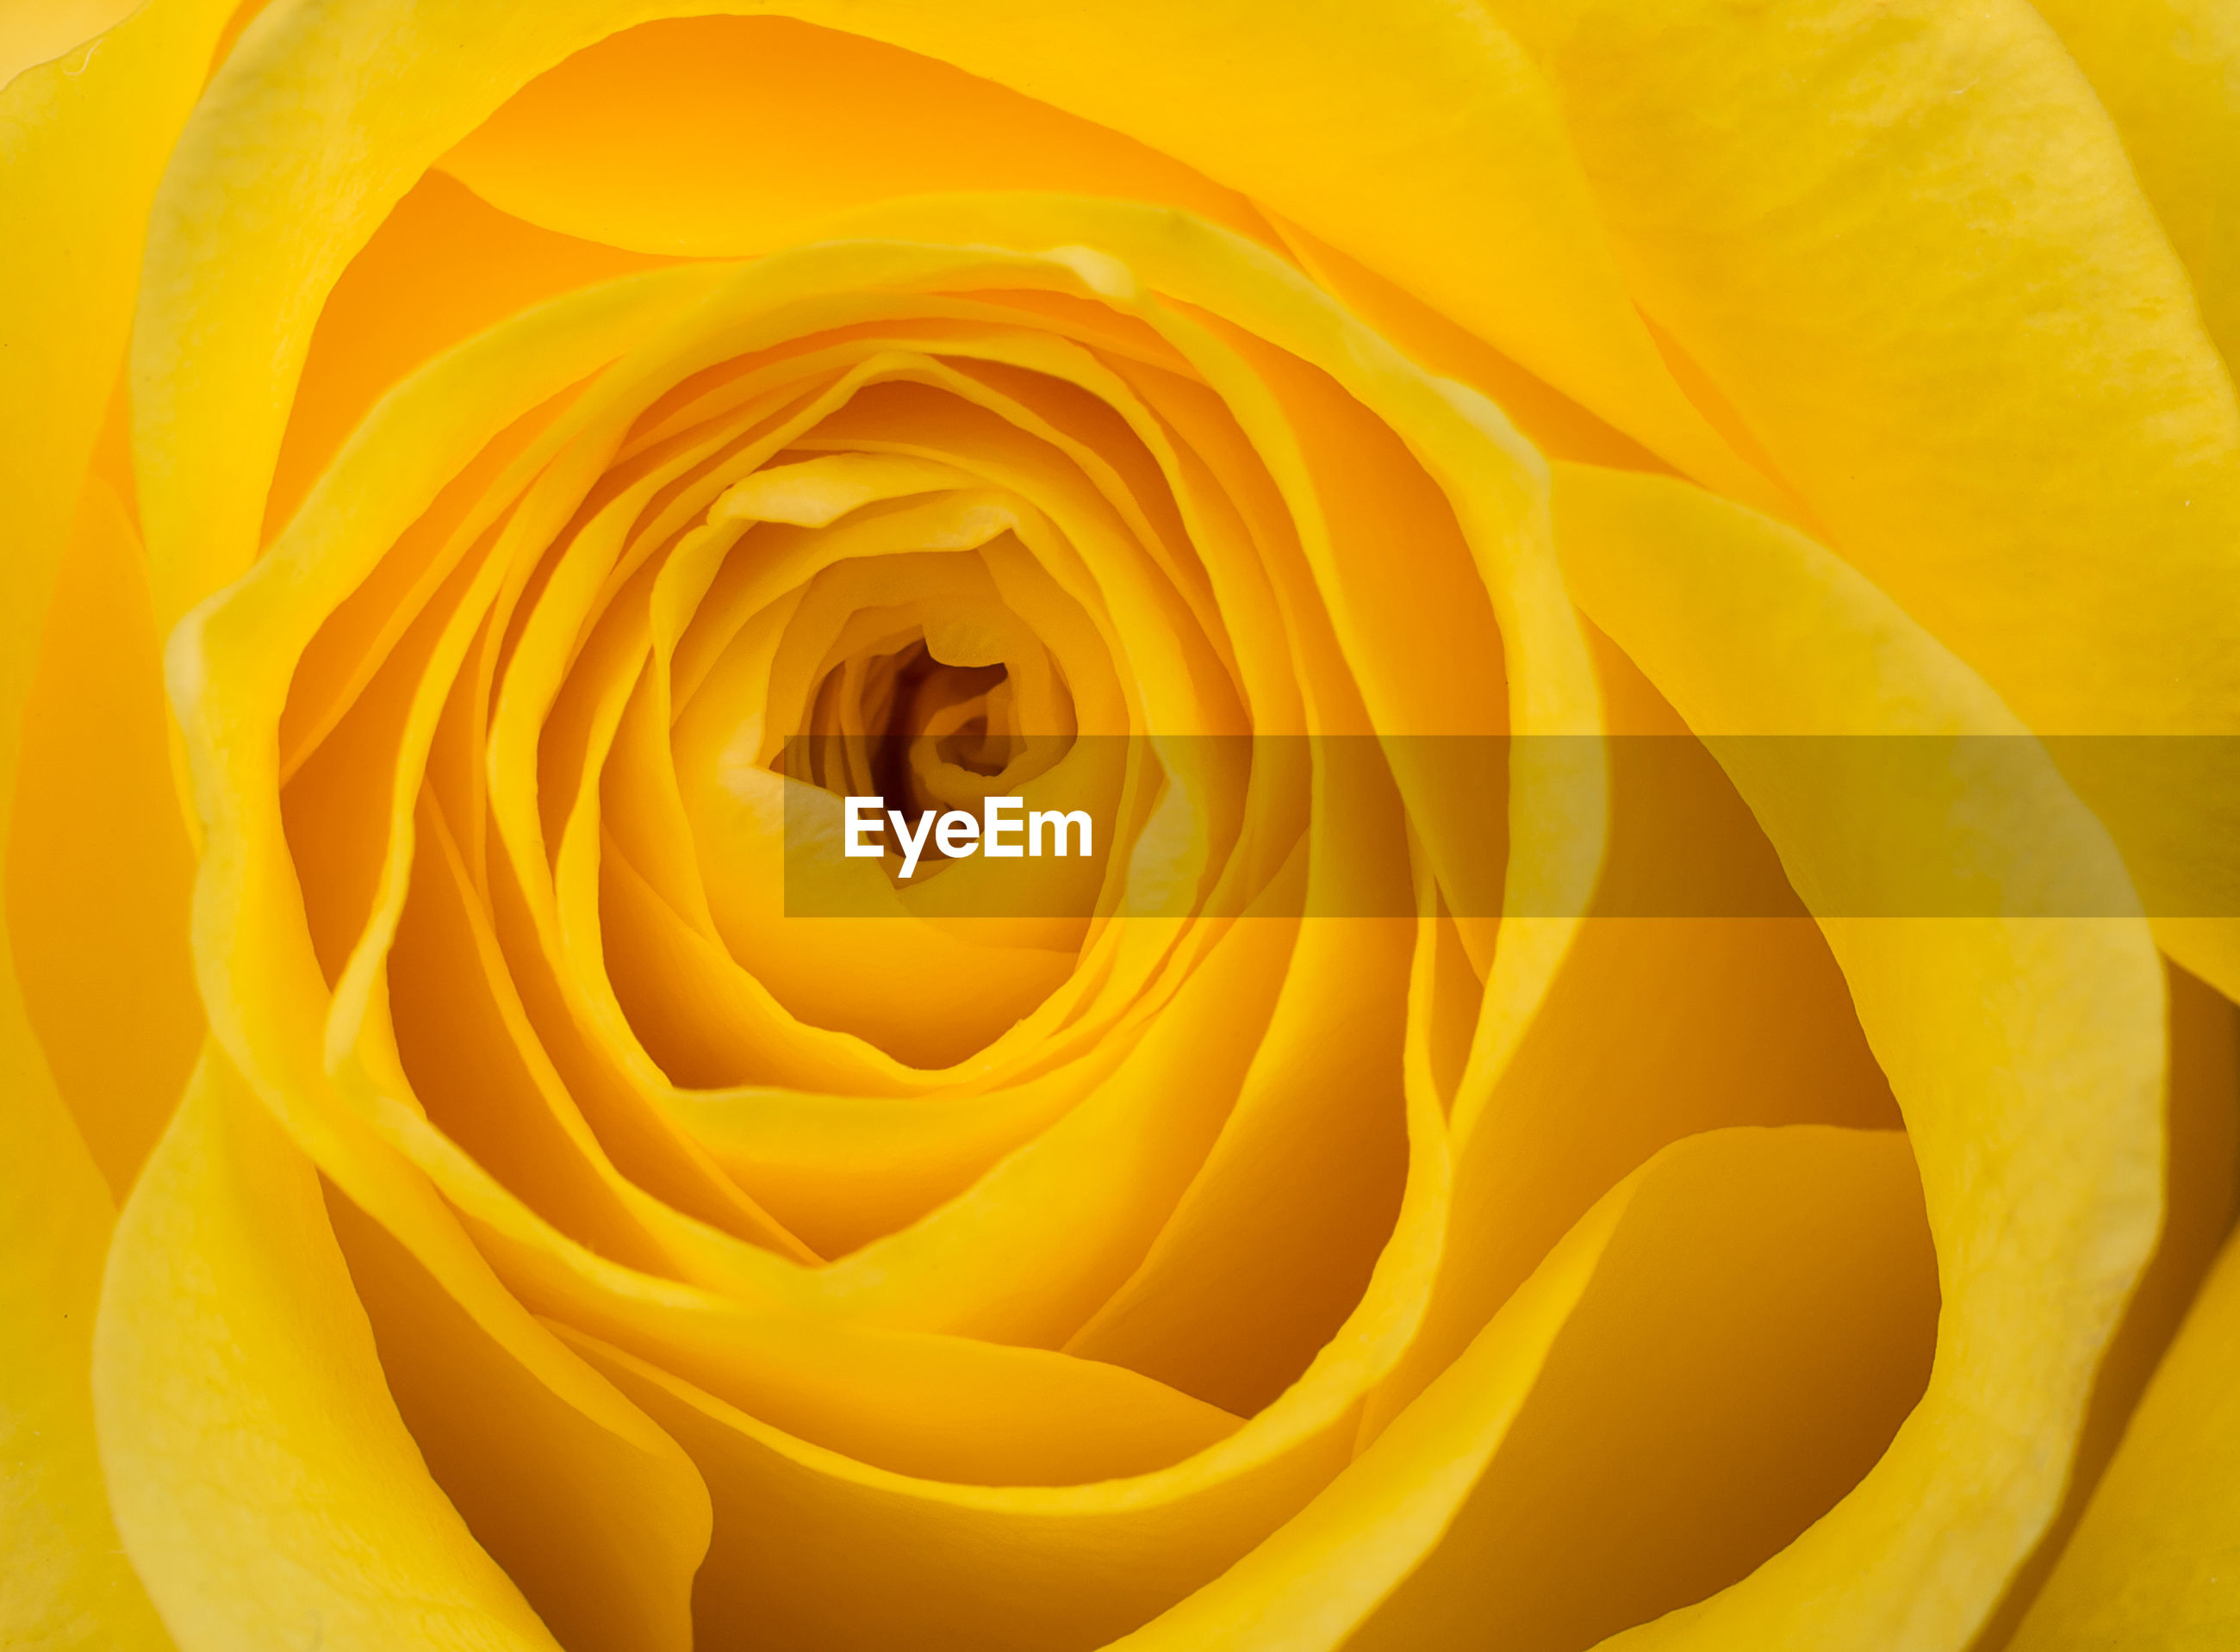 FULL FRAME SHOT OF YELLOW ROSE IN ORANGE PLANT